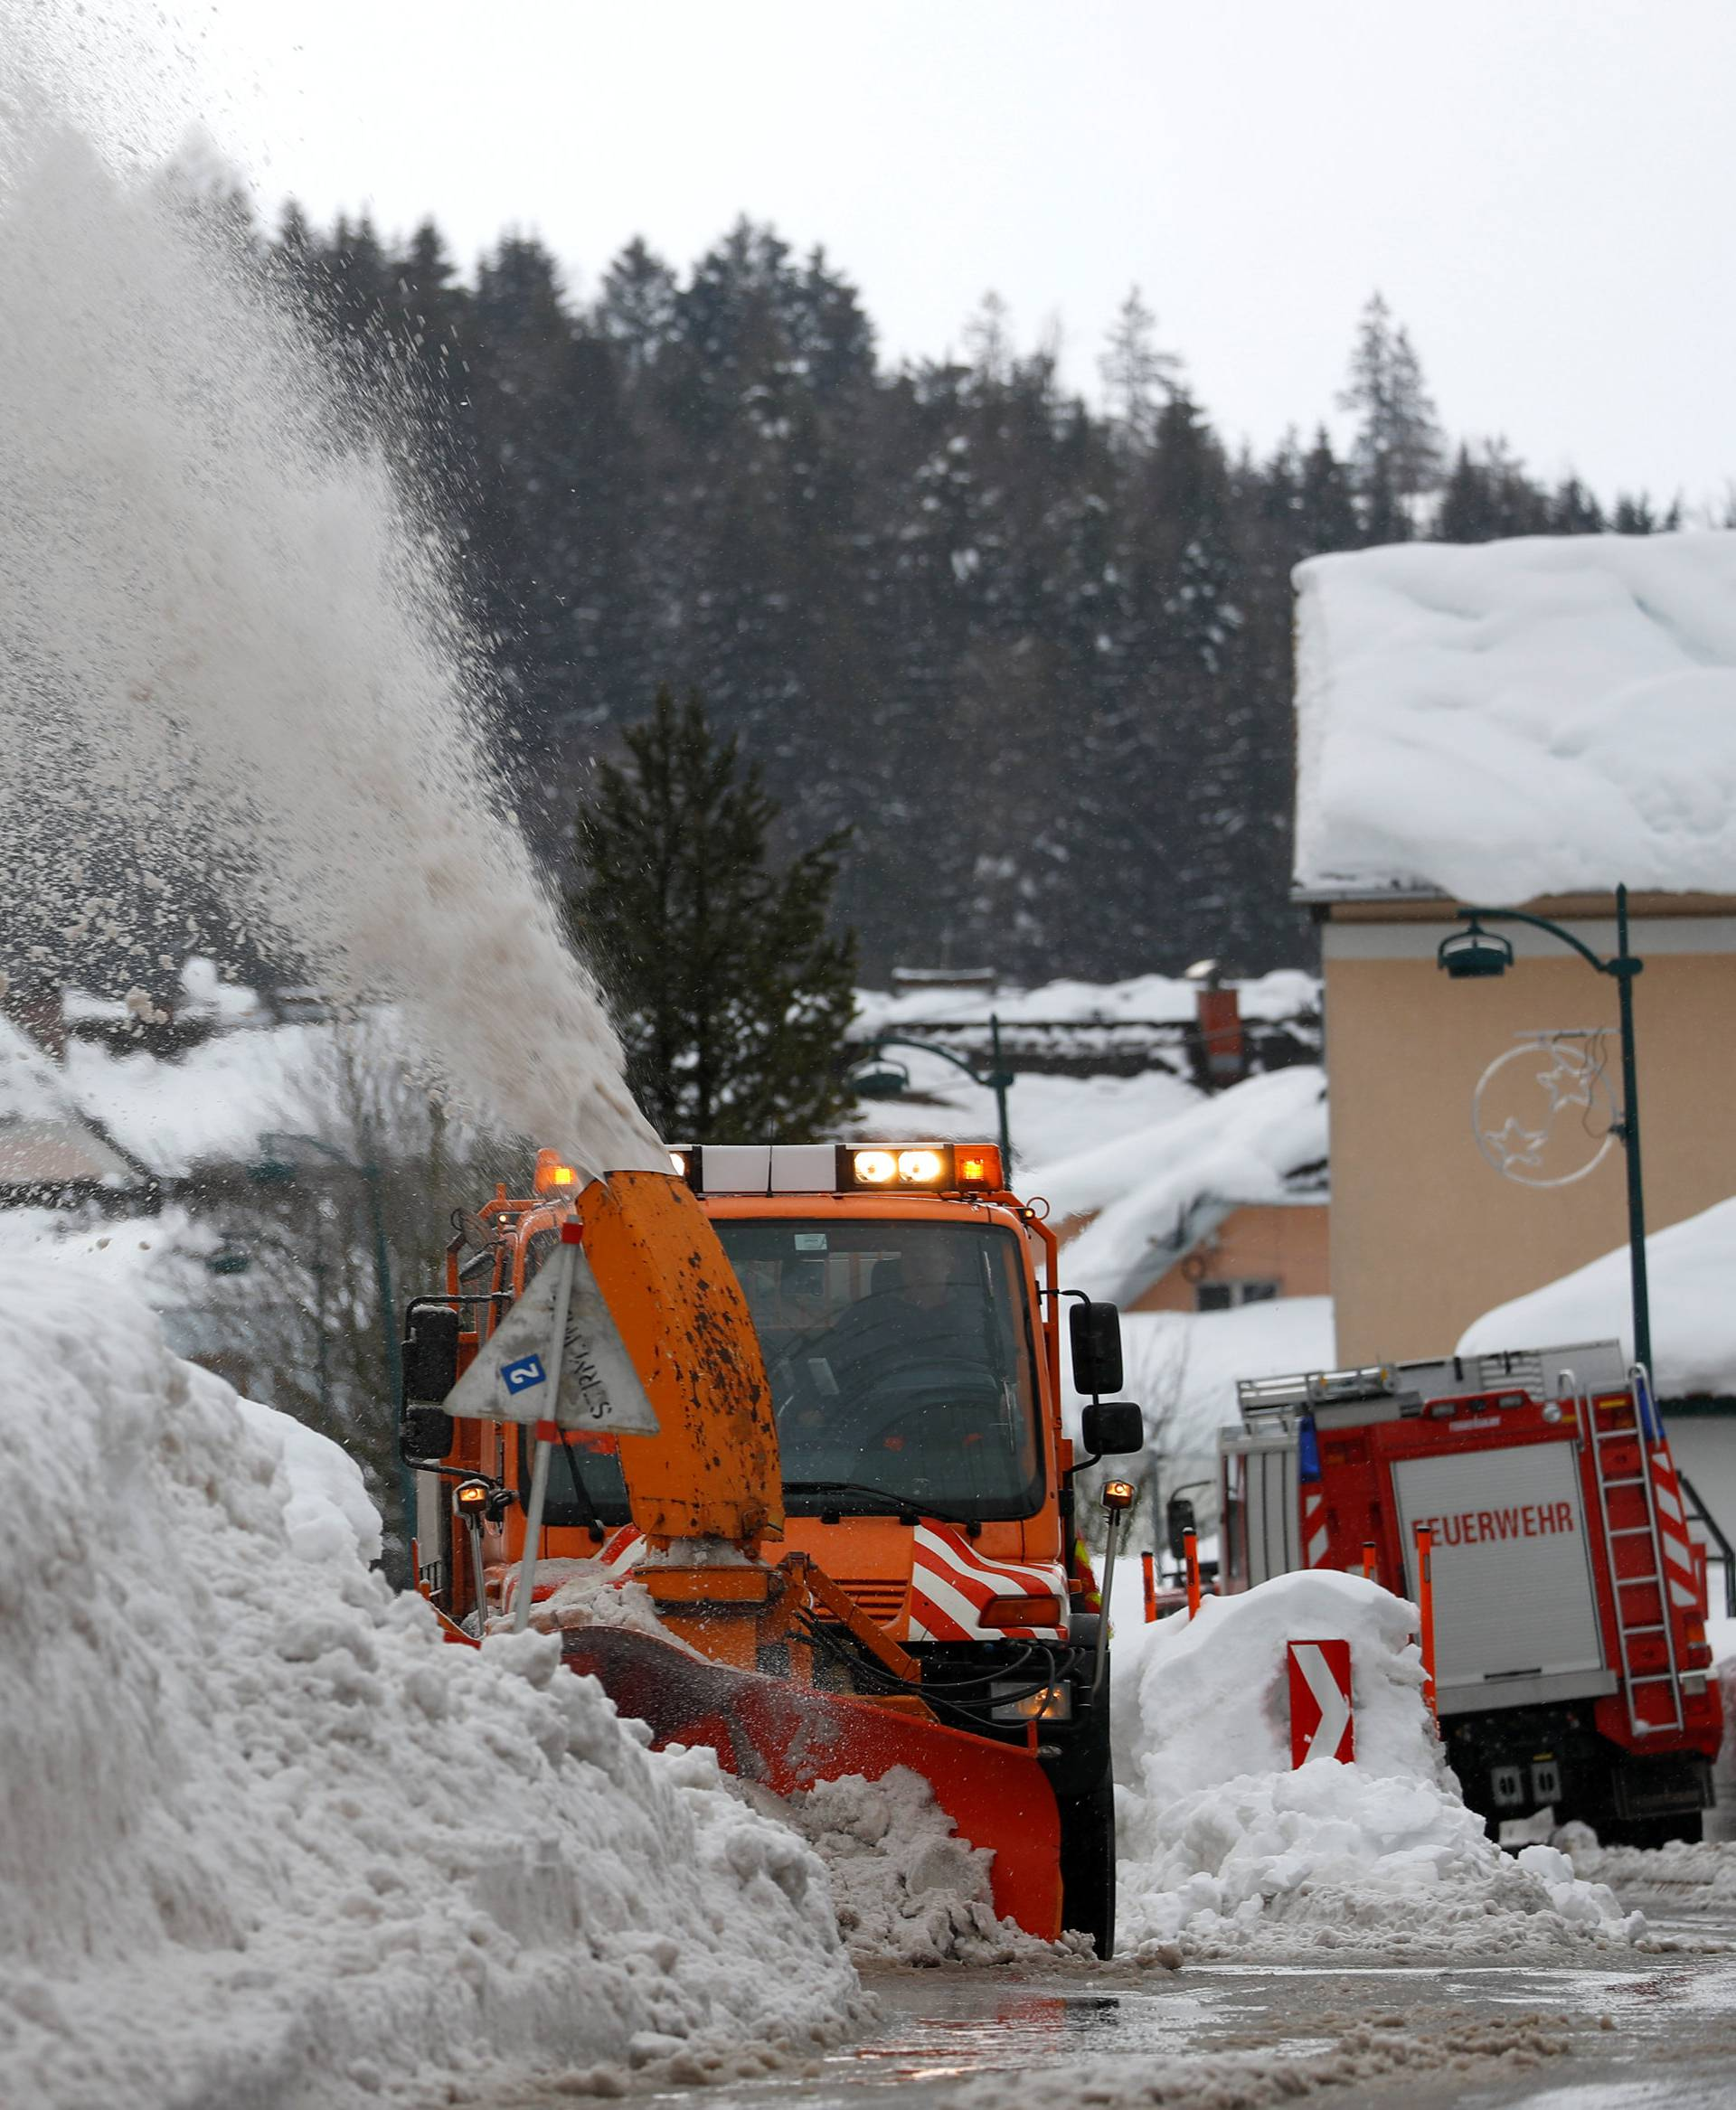 A vehicle removes snow on a road after heavy snowfall in Rosenau